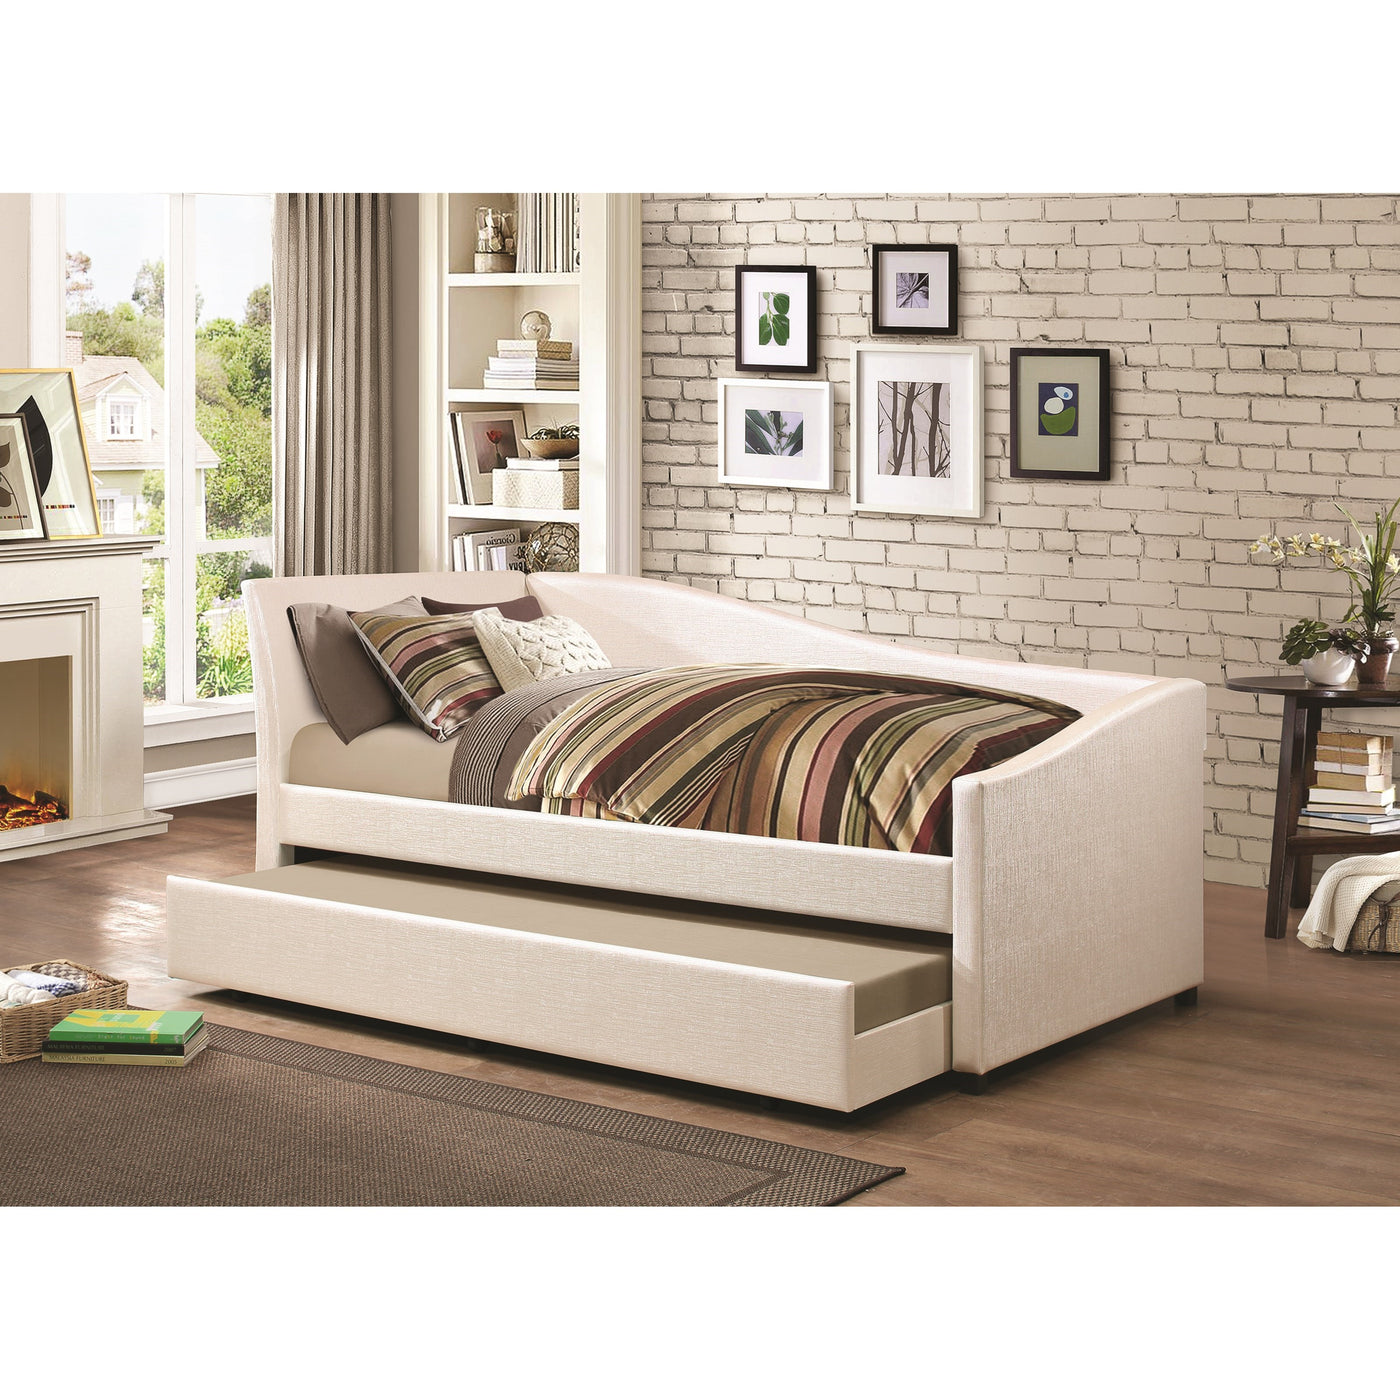 Coaster Furniture Twin Daybed With Upholstered Ivory Fabric And Trundl